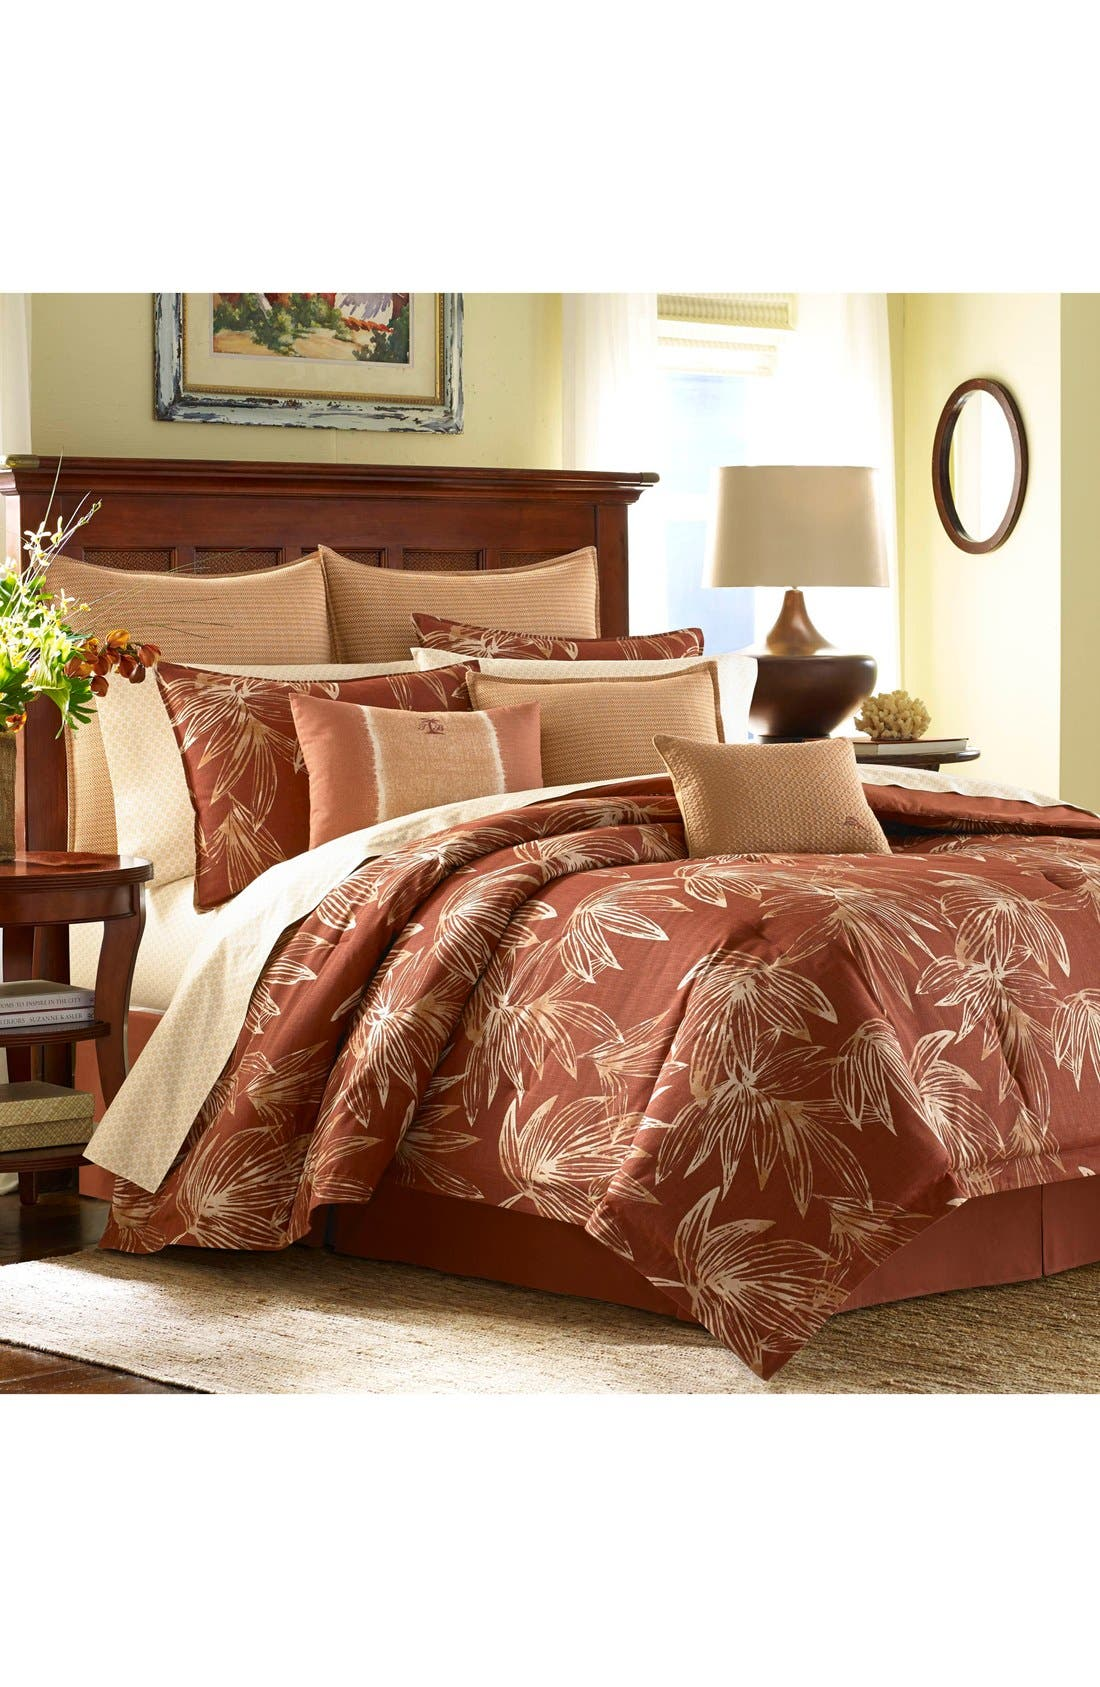 Cayo Coco Comforter, Sham & Bed Skirt Set,                             Main thumbnail 1, color,                             Rust